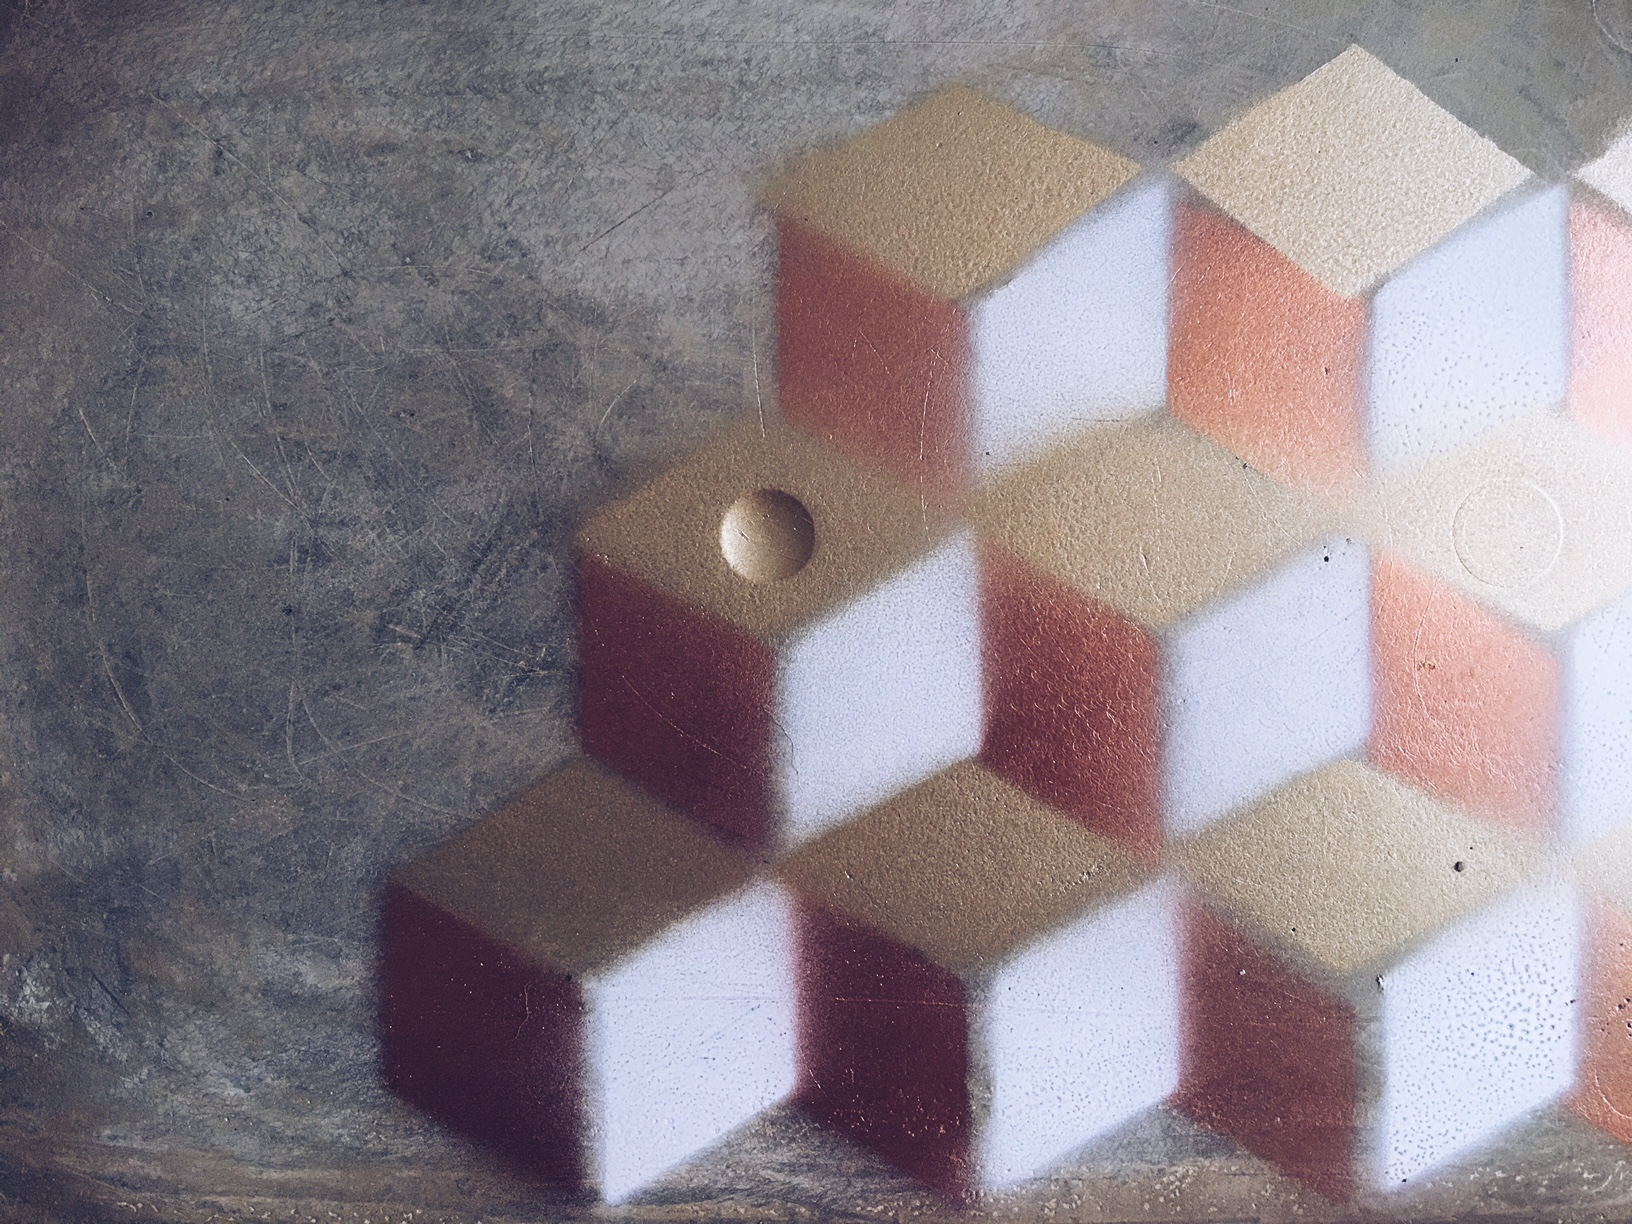 The completed copper, gold and white geometric pattern on one of the mats.